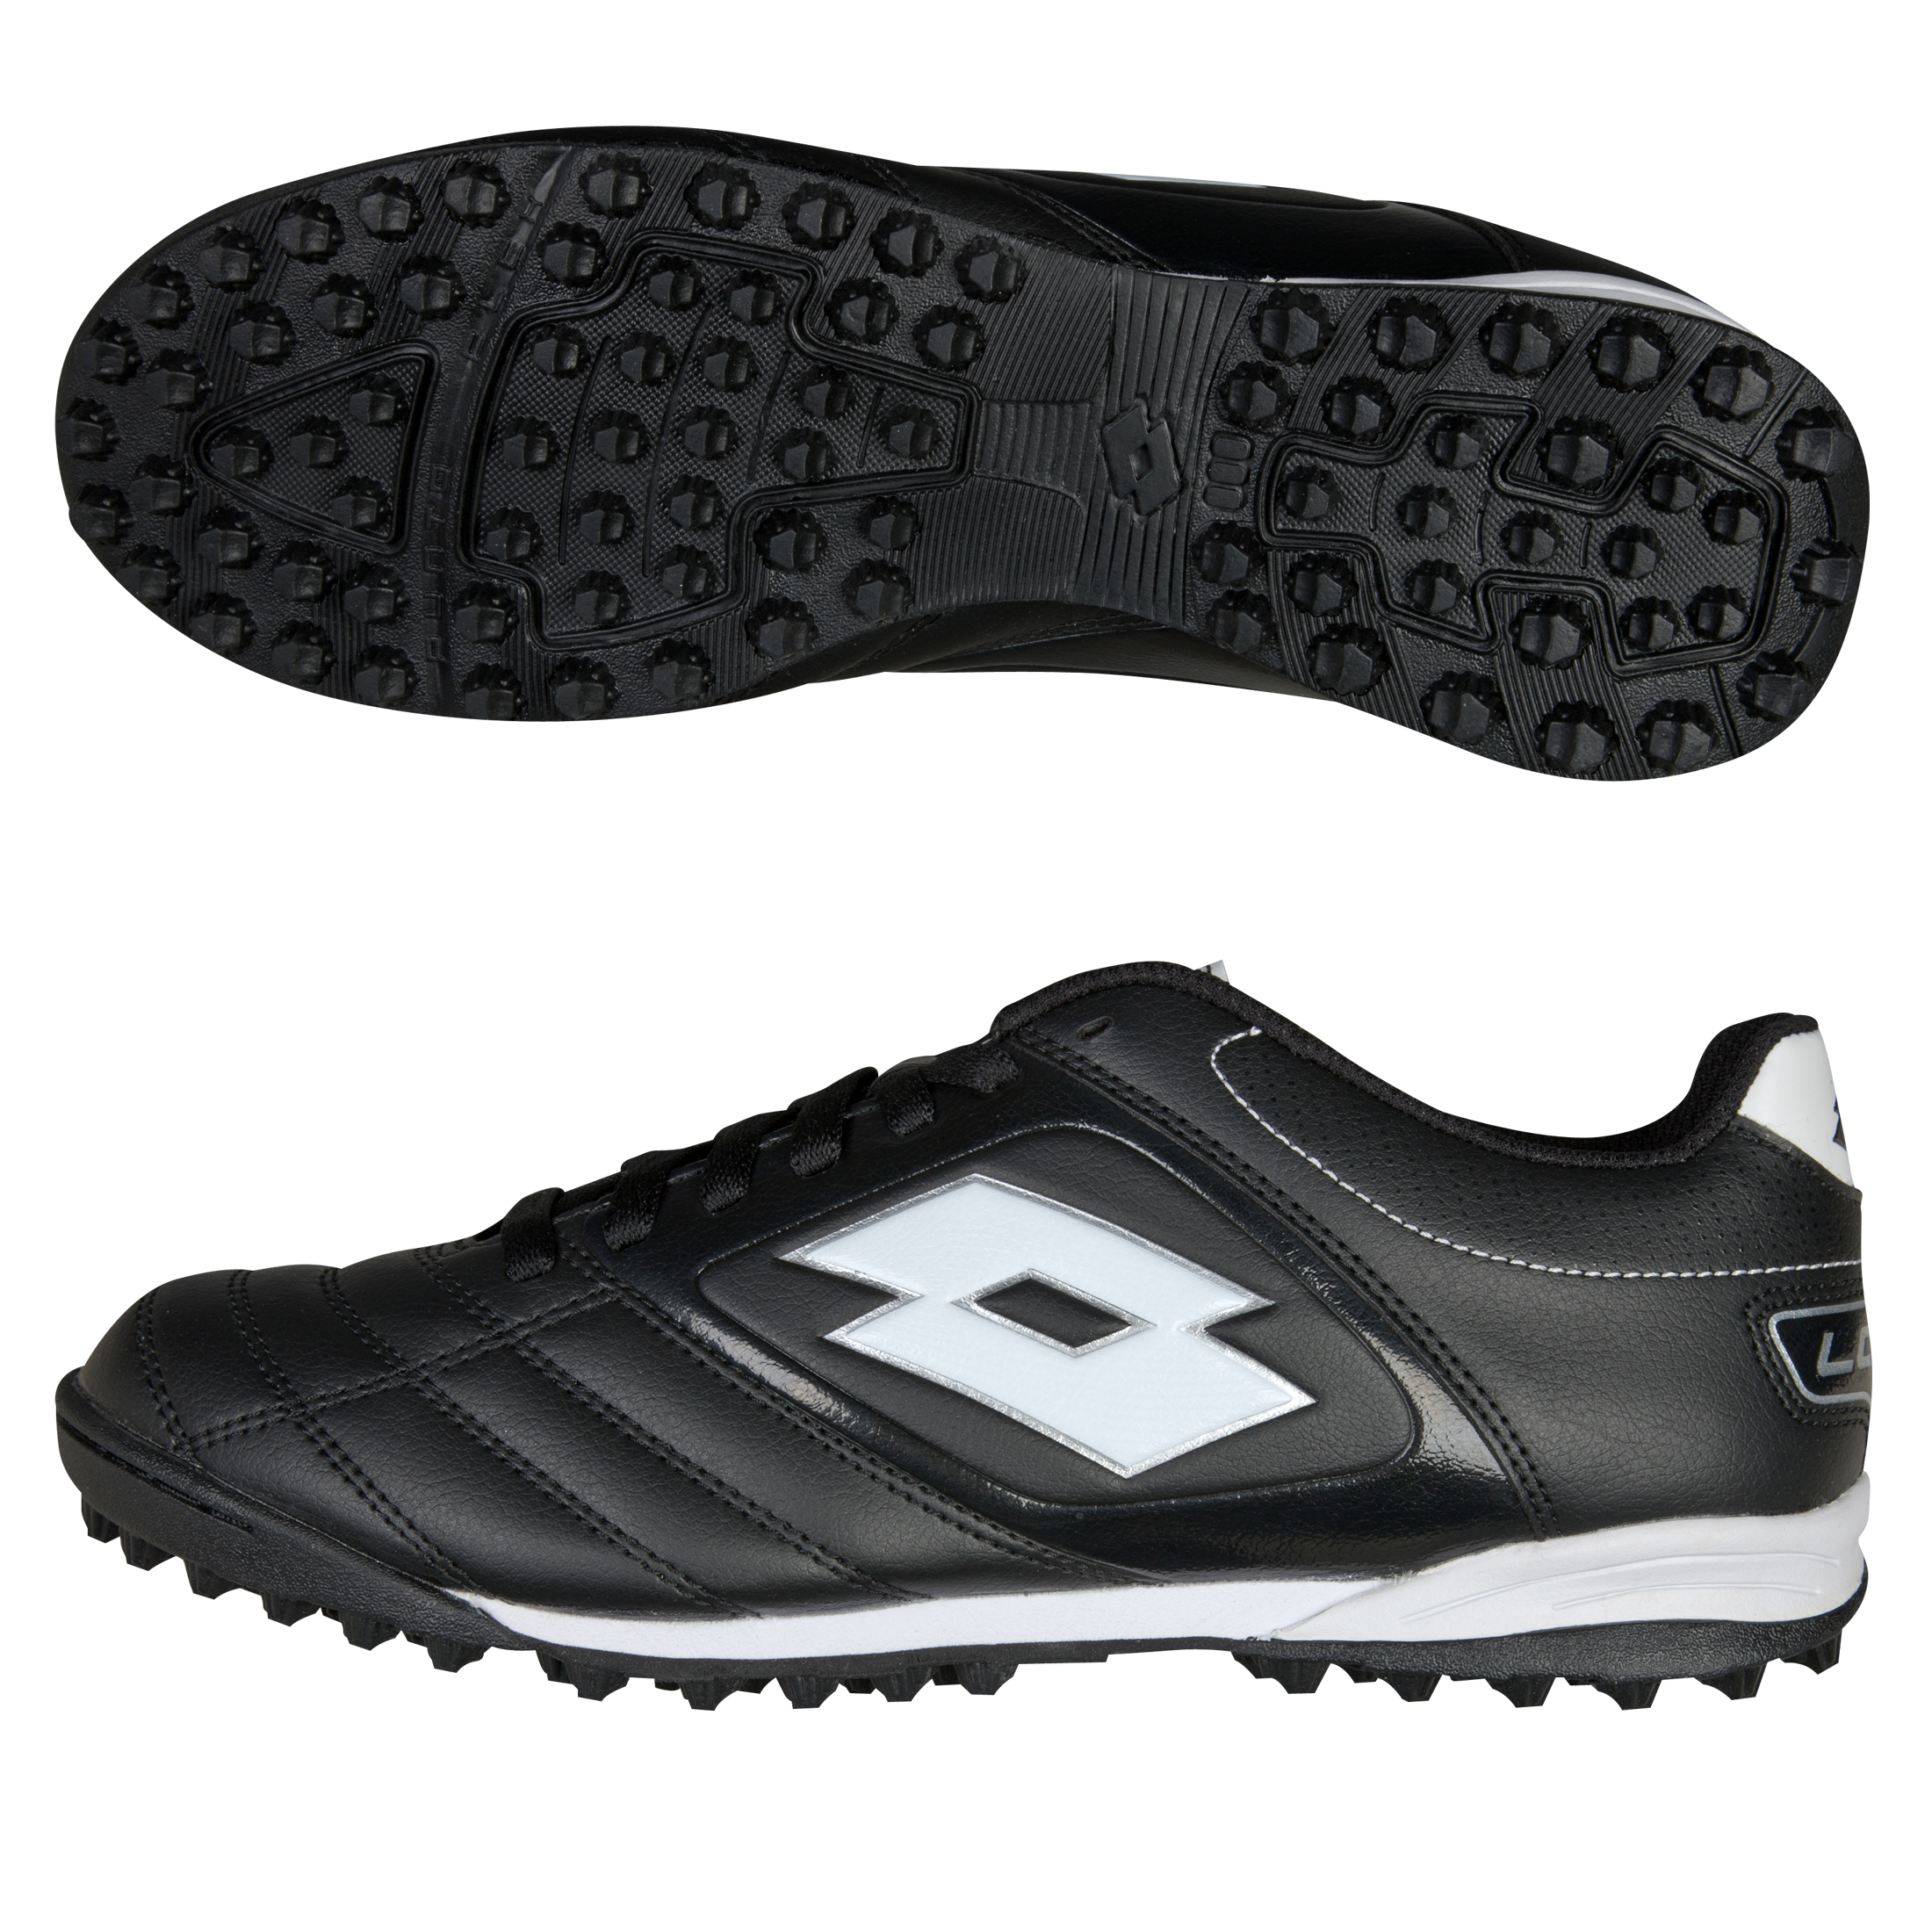 Lotto Stadio Potenza 500 Astro Turf Trainers - Black/White